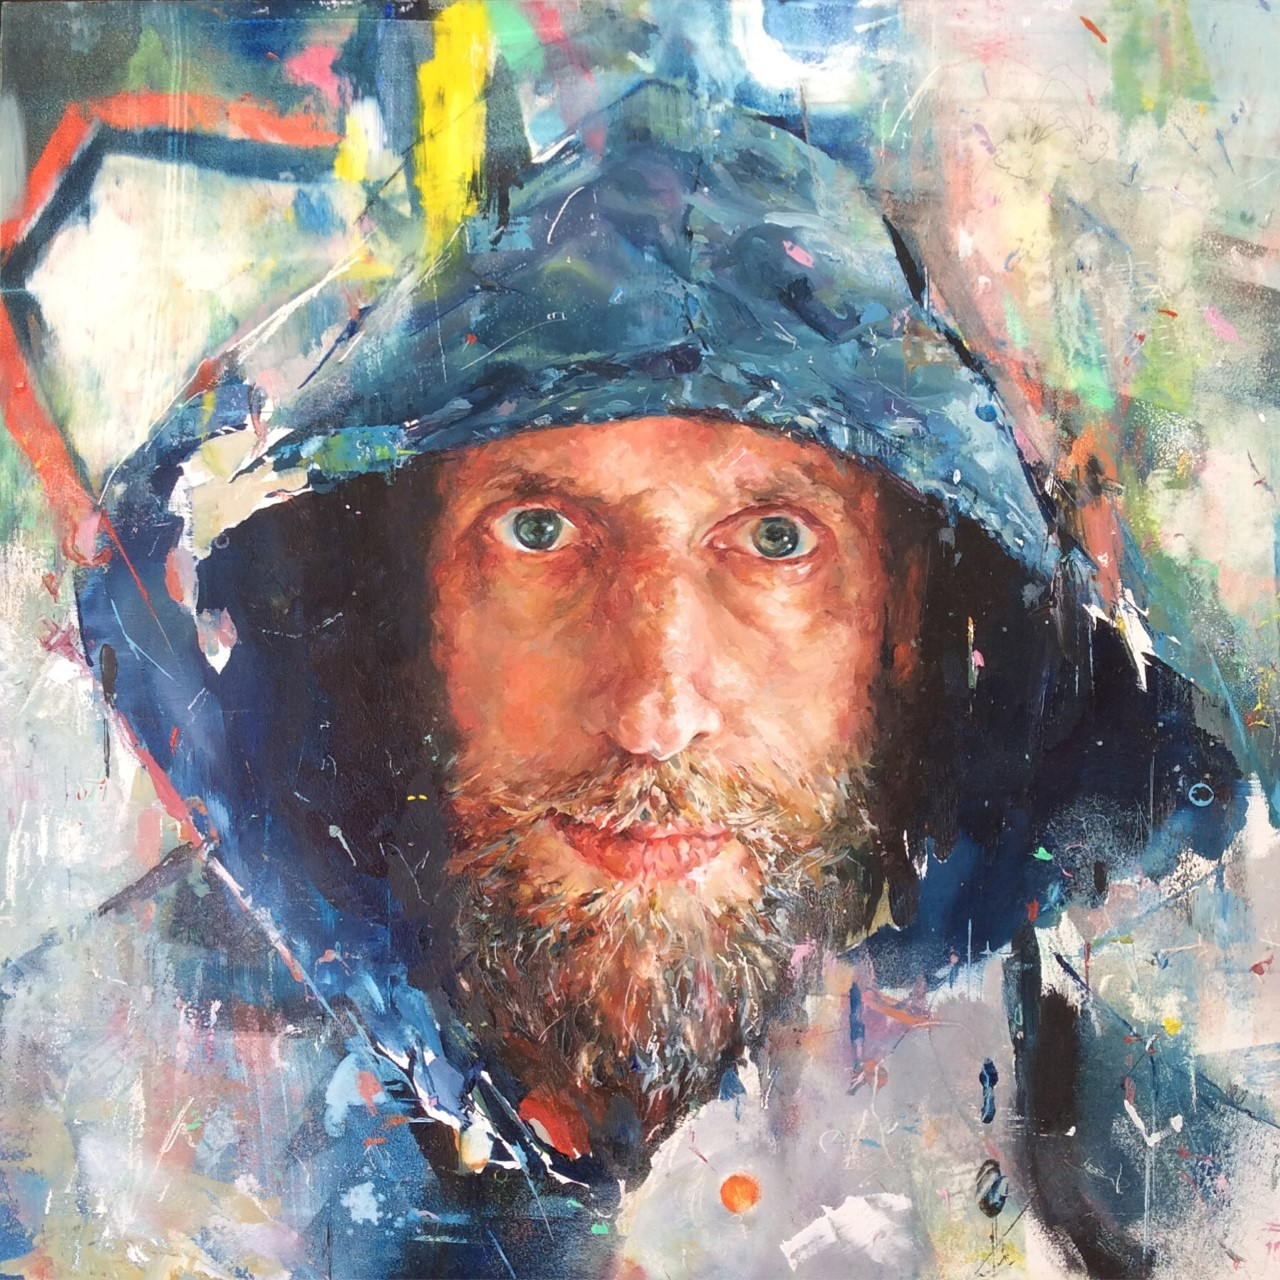 Tom in the hood. Angela Bell. Jackson's Painting Prize.